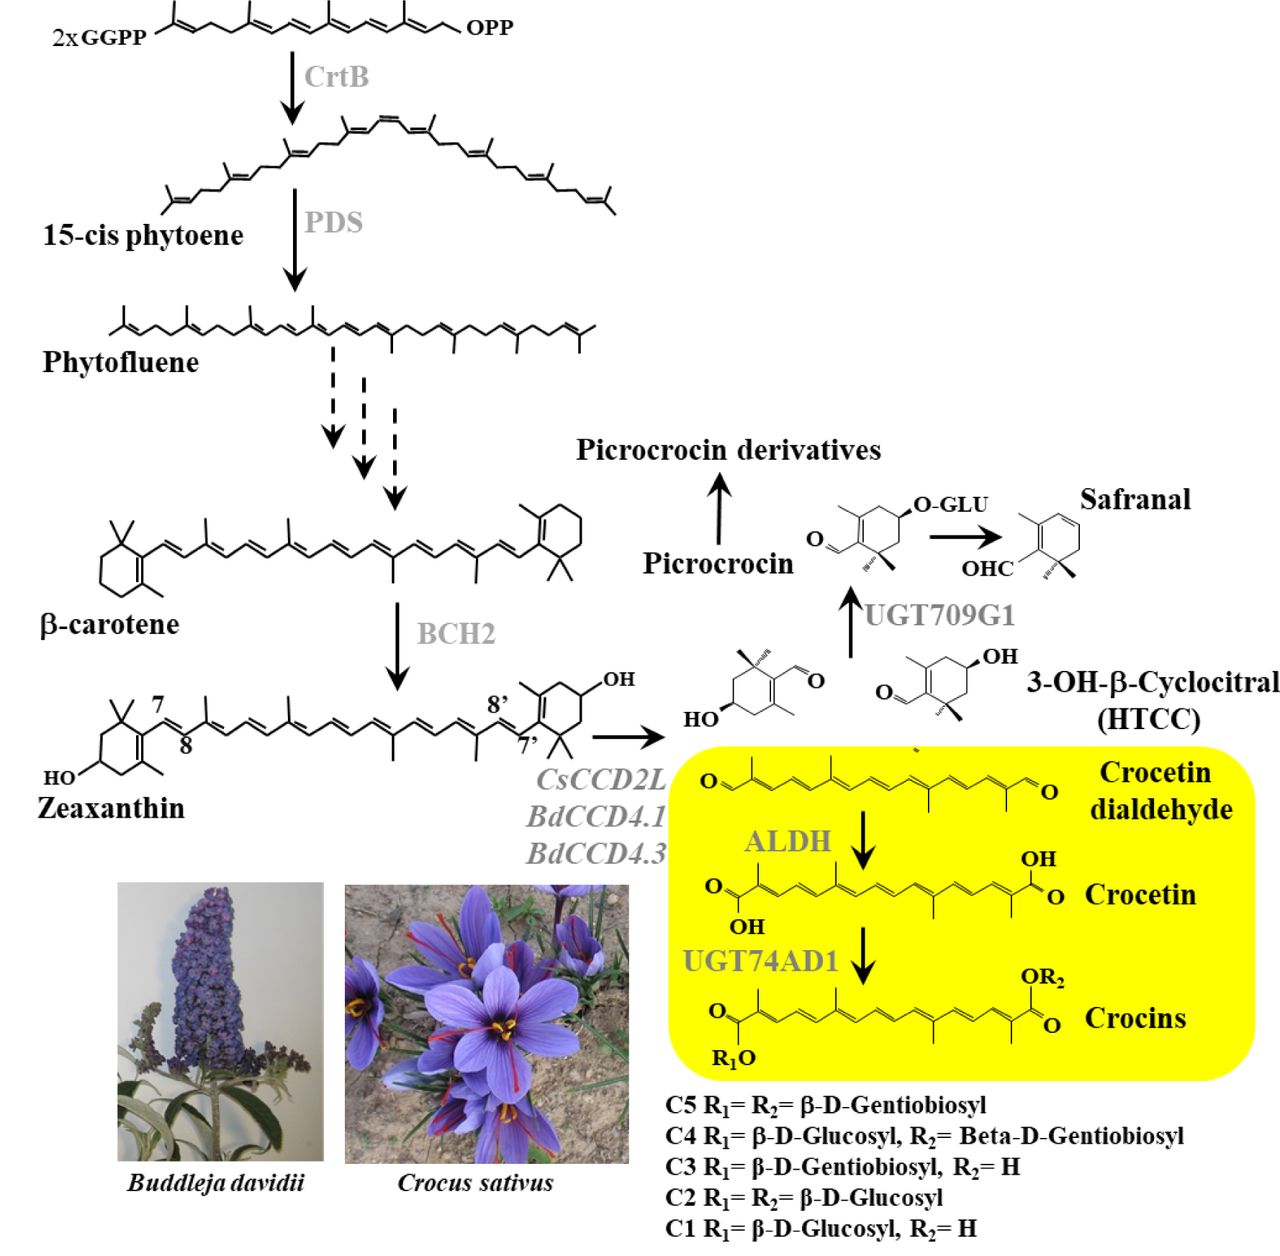 Schematic overview of the crocins biosynthesis pathway in C. sativus and B. davidii . CrtB, phytoene synthase; PDS, phytoene desaturase; BCH2, carotene hydroxylase; CsCCD2L, C. sativus carotenoid cleavage dioxygenase 2L; BdCCD4.1 and 4.3, B. davidii carotenoid cleavage dioxygenase 4.1 and 4.3; ALDH, aldehyde dehydrogenase; UGT74AD1, UDP-glucosyltransferase 74AD1.